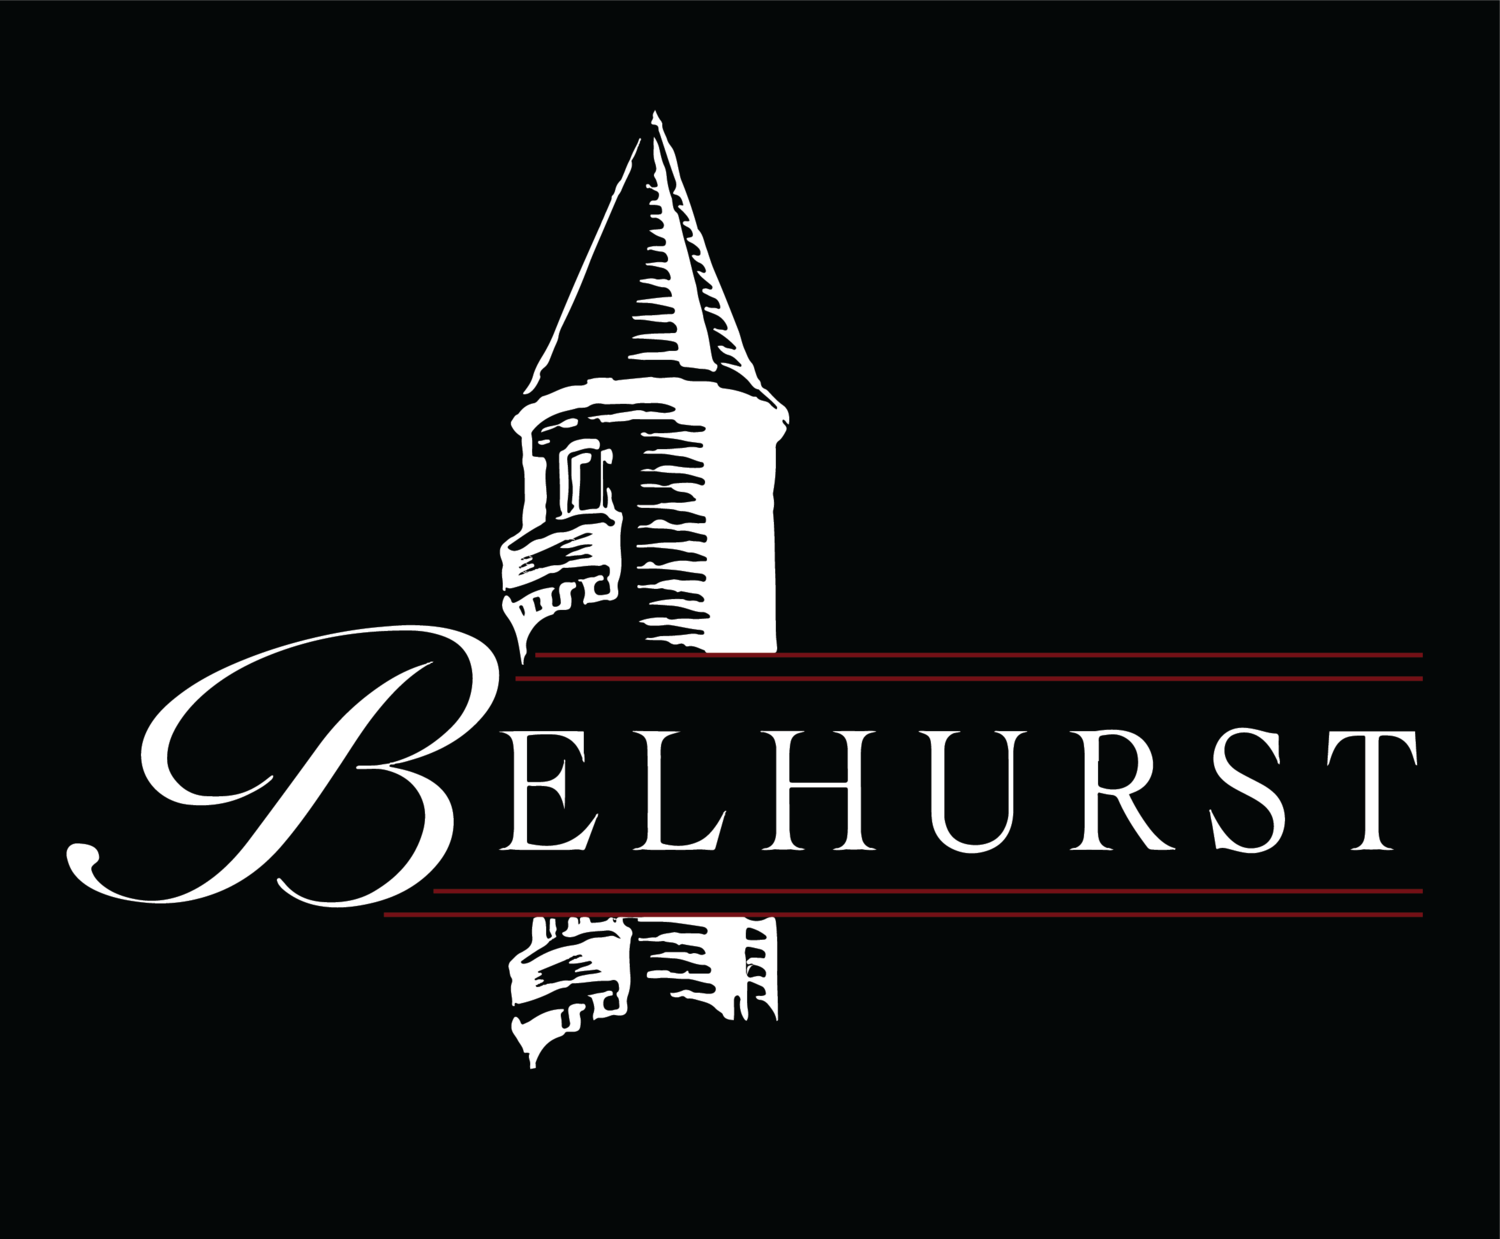 Belhurst Castle - Geneva Lakefront Resort in the Finger Lakes